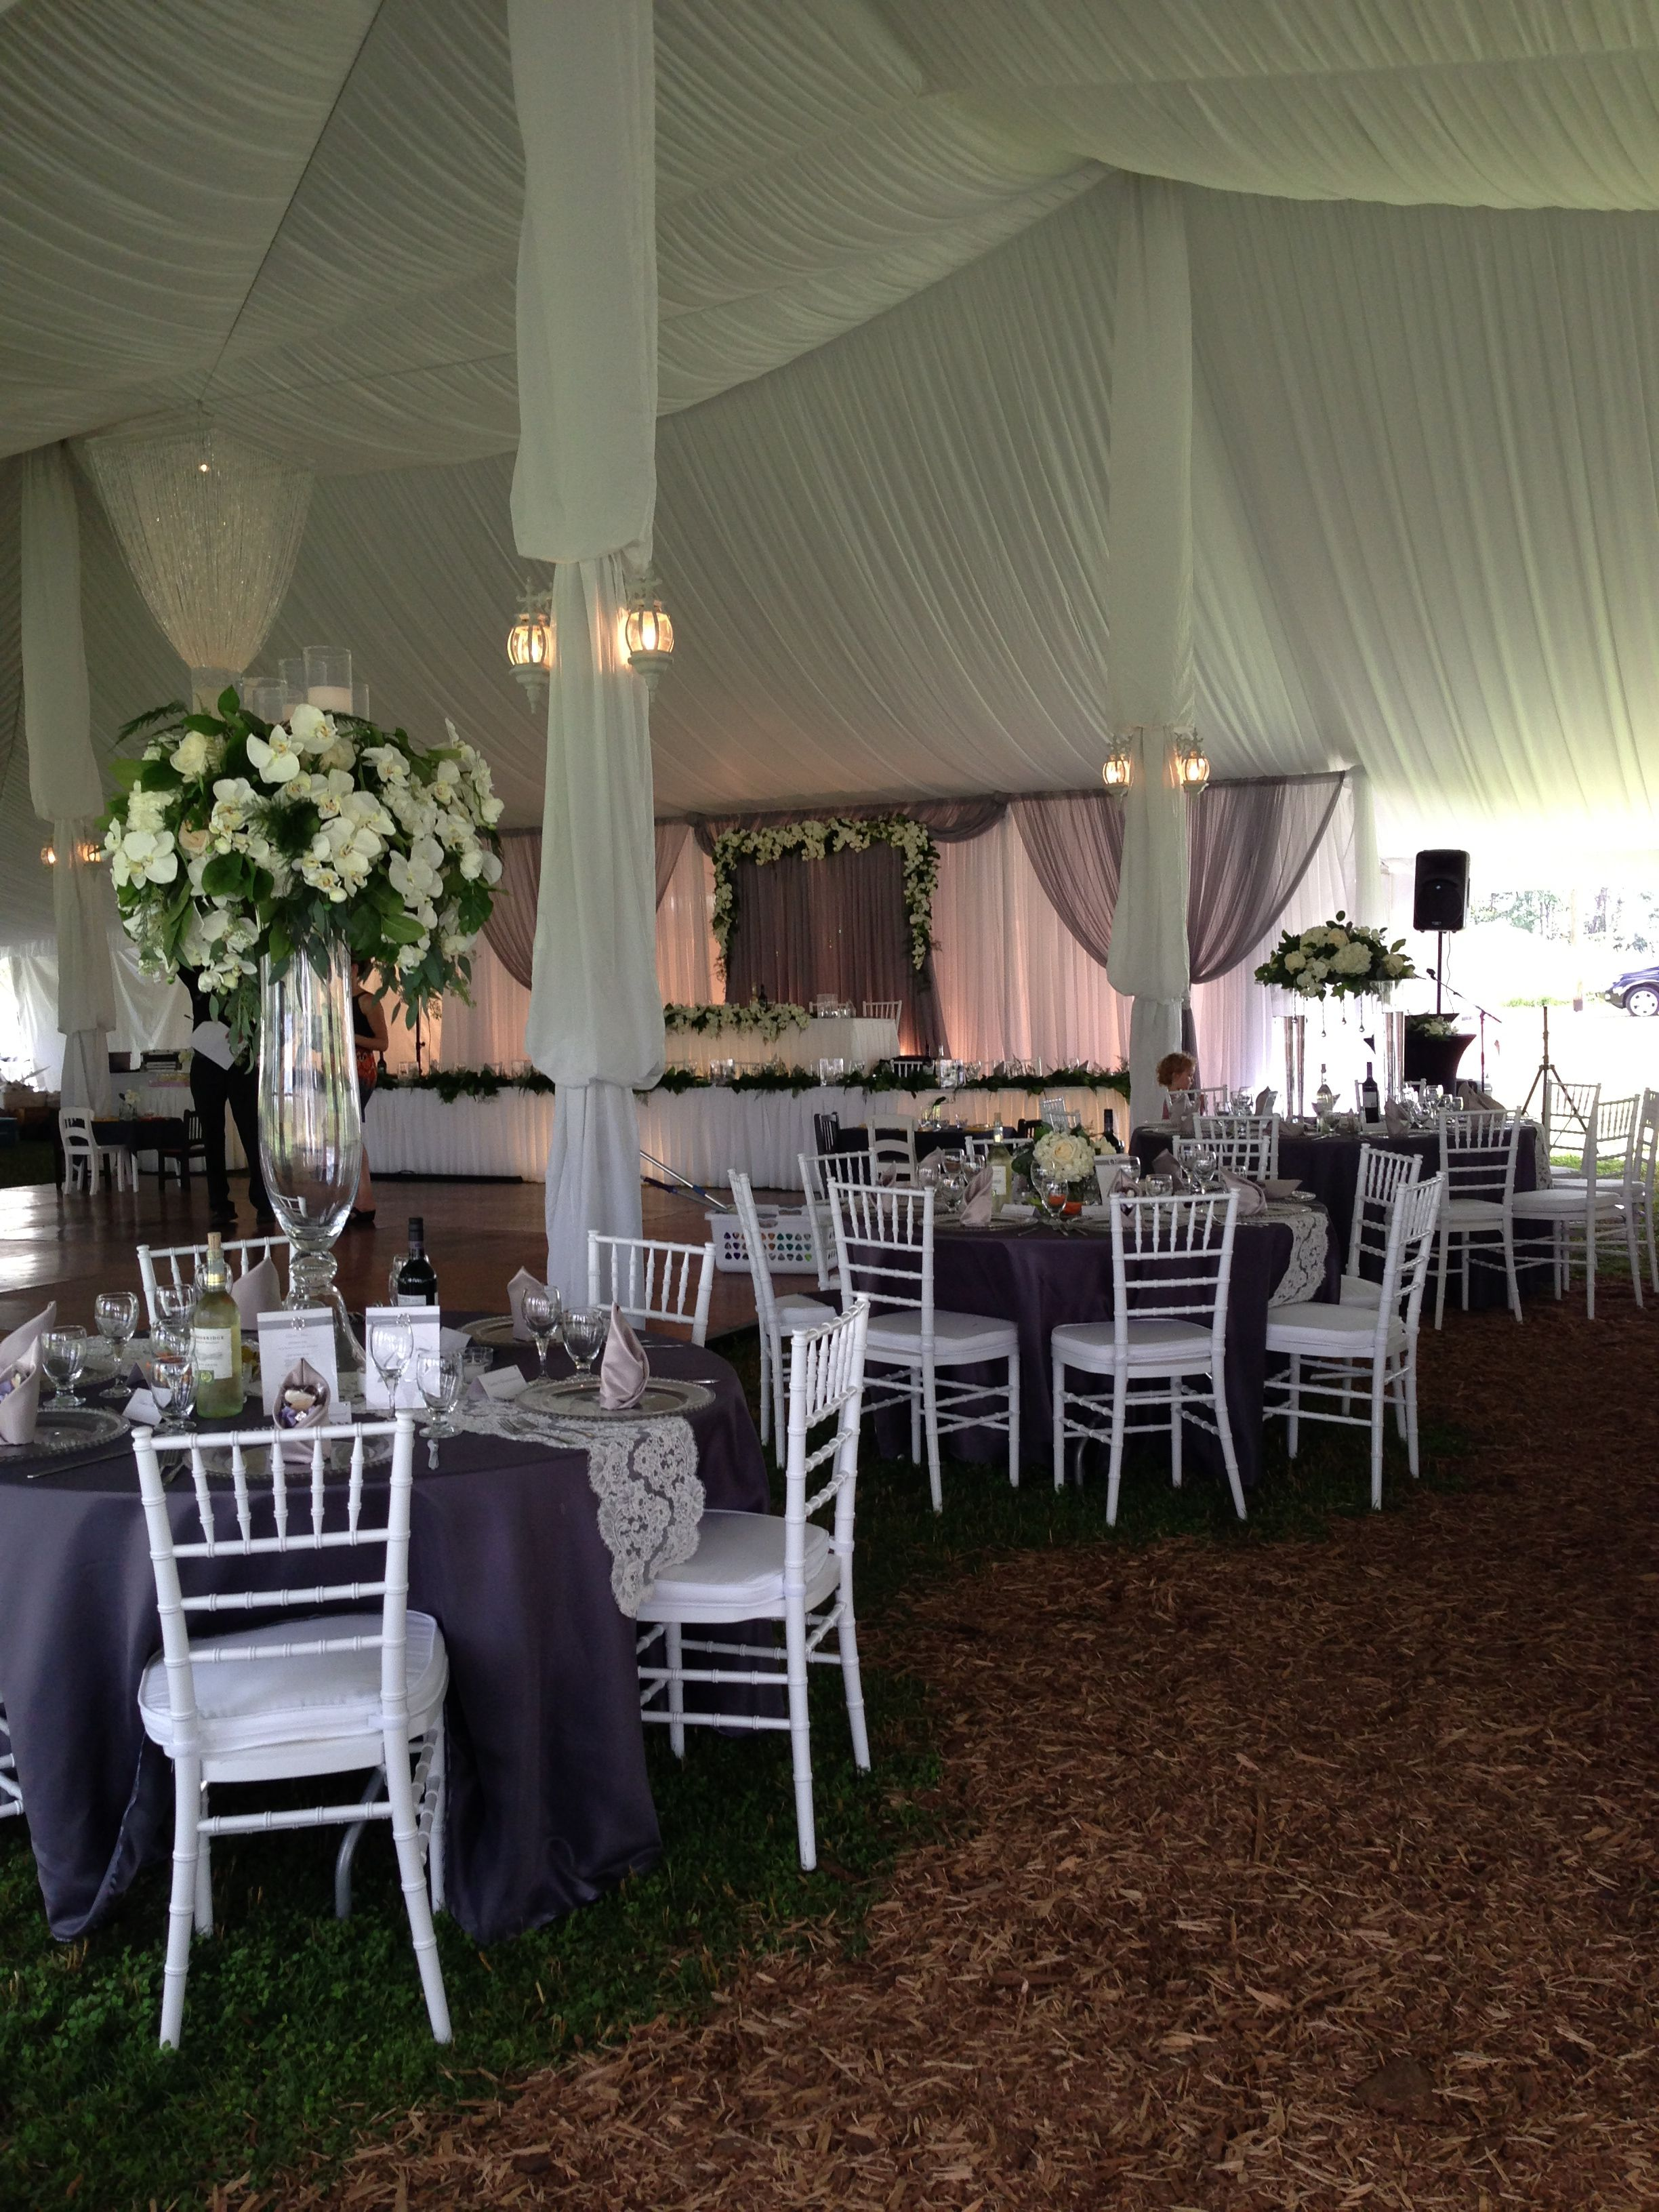 Grey and white wedding tent by Village Vines floral and Events www.villagevinesflorists.com